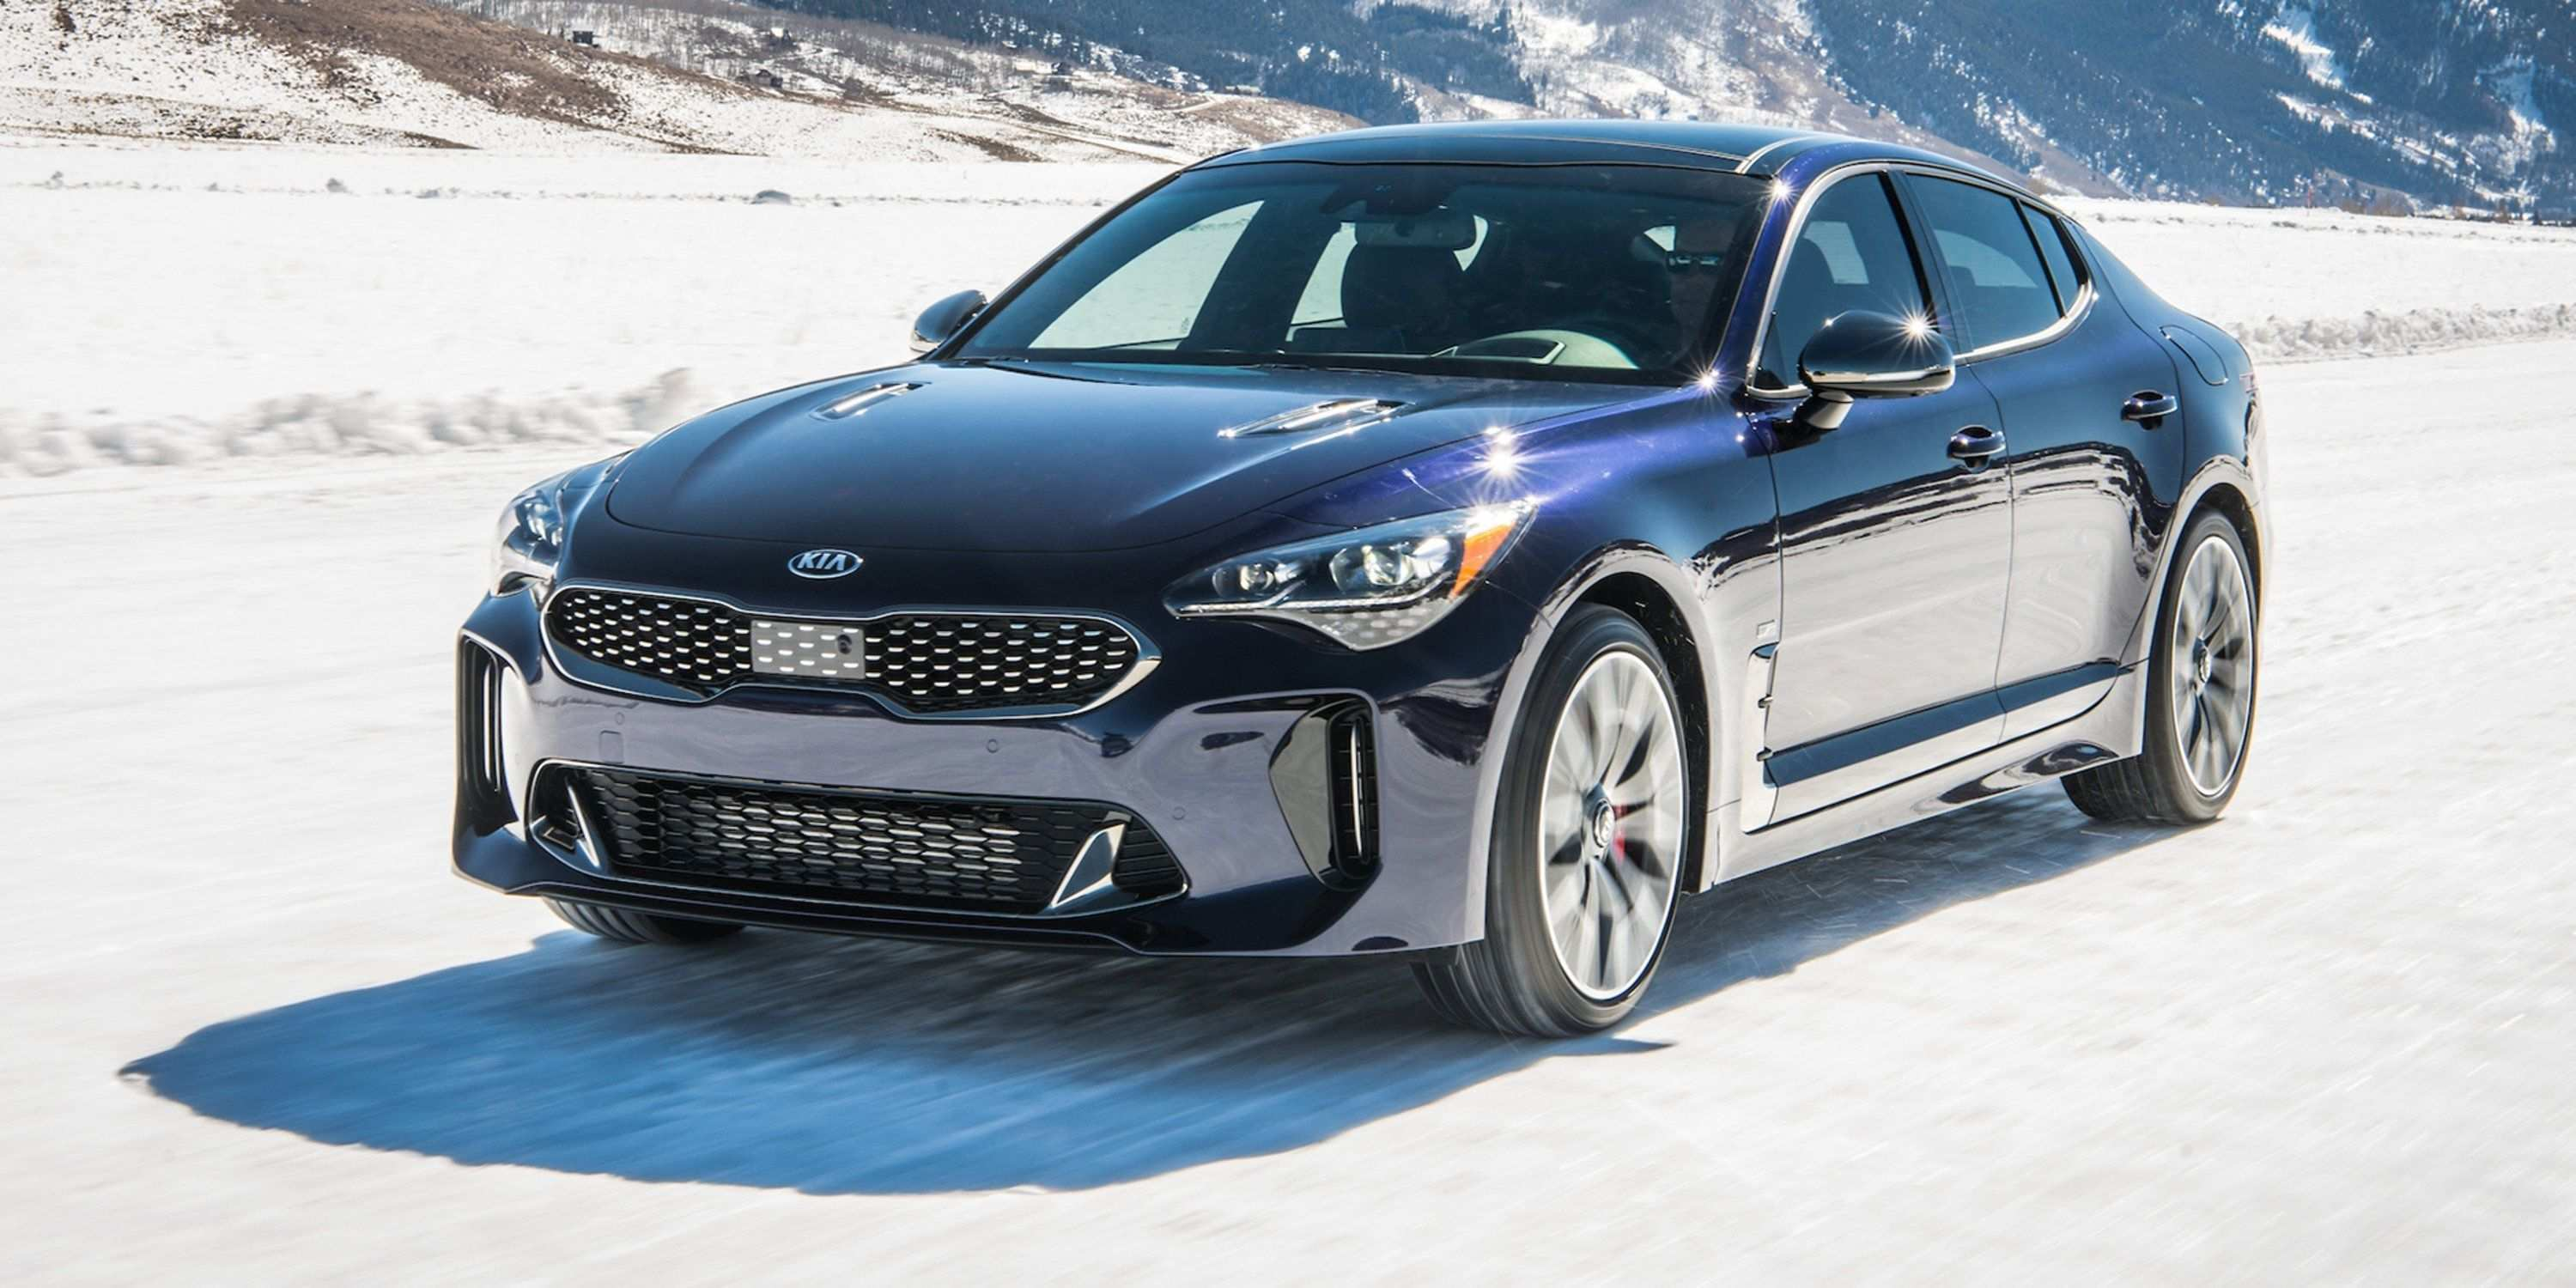 68 All New Kia Modelos 2019 Photos with Kia Modelos 2019